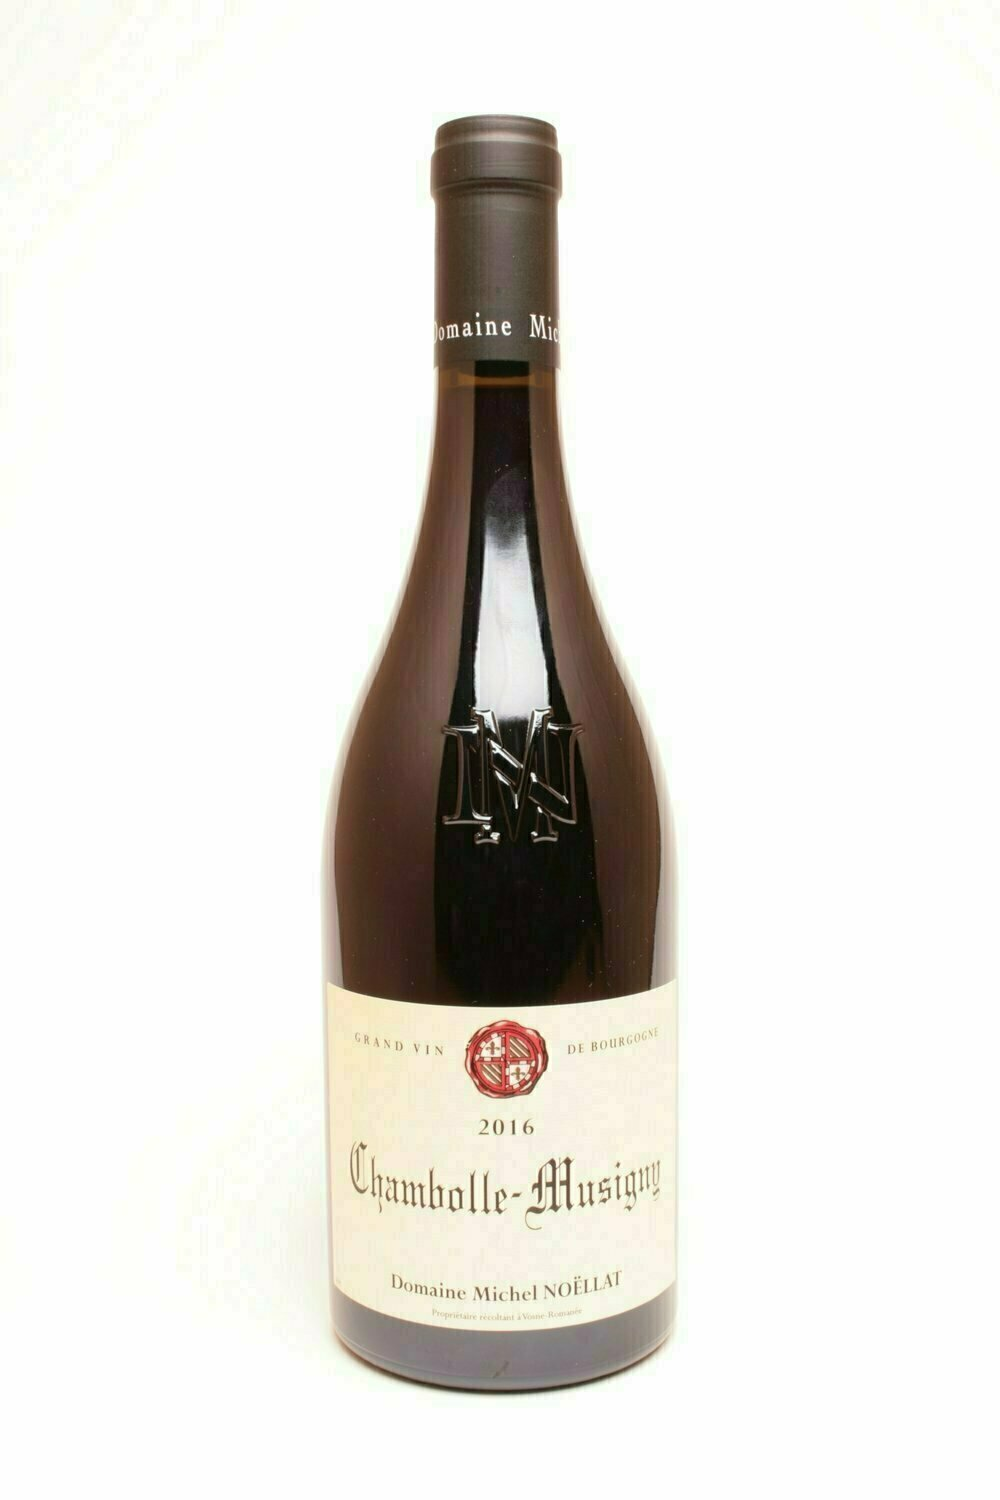 Domaine Michel Noëllat Chambolle Musigny 2016